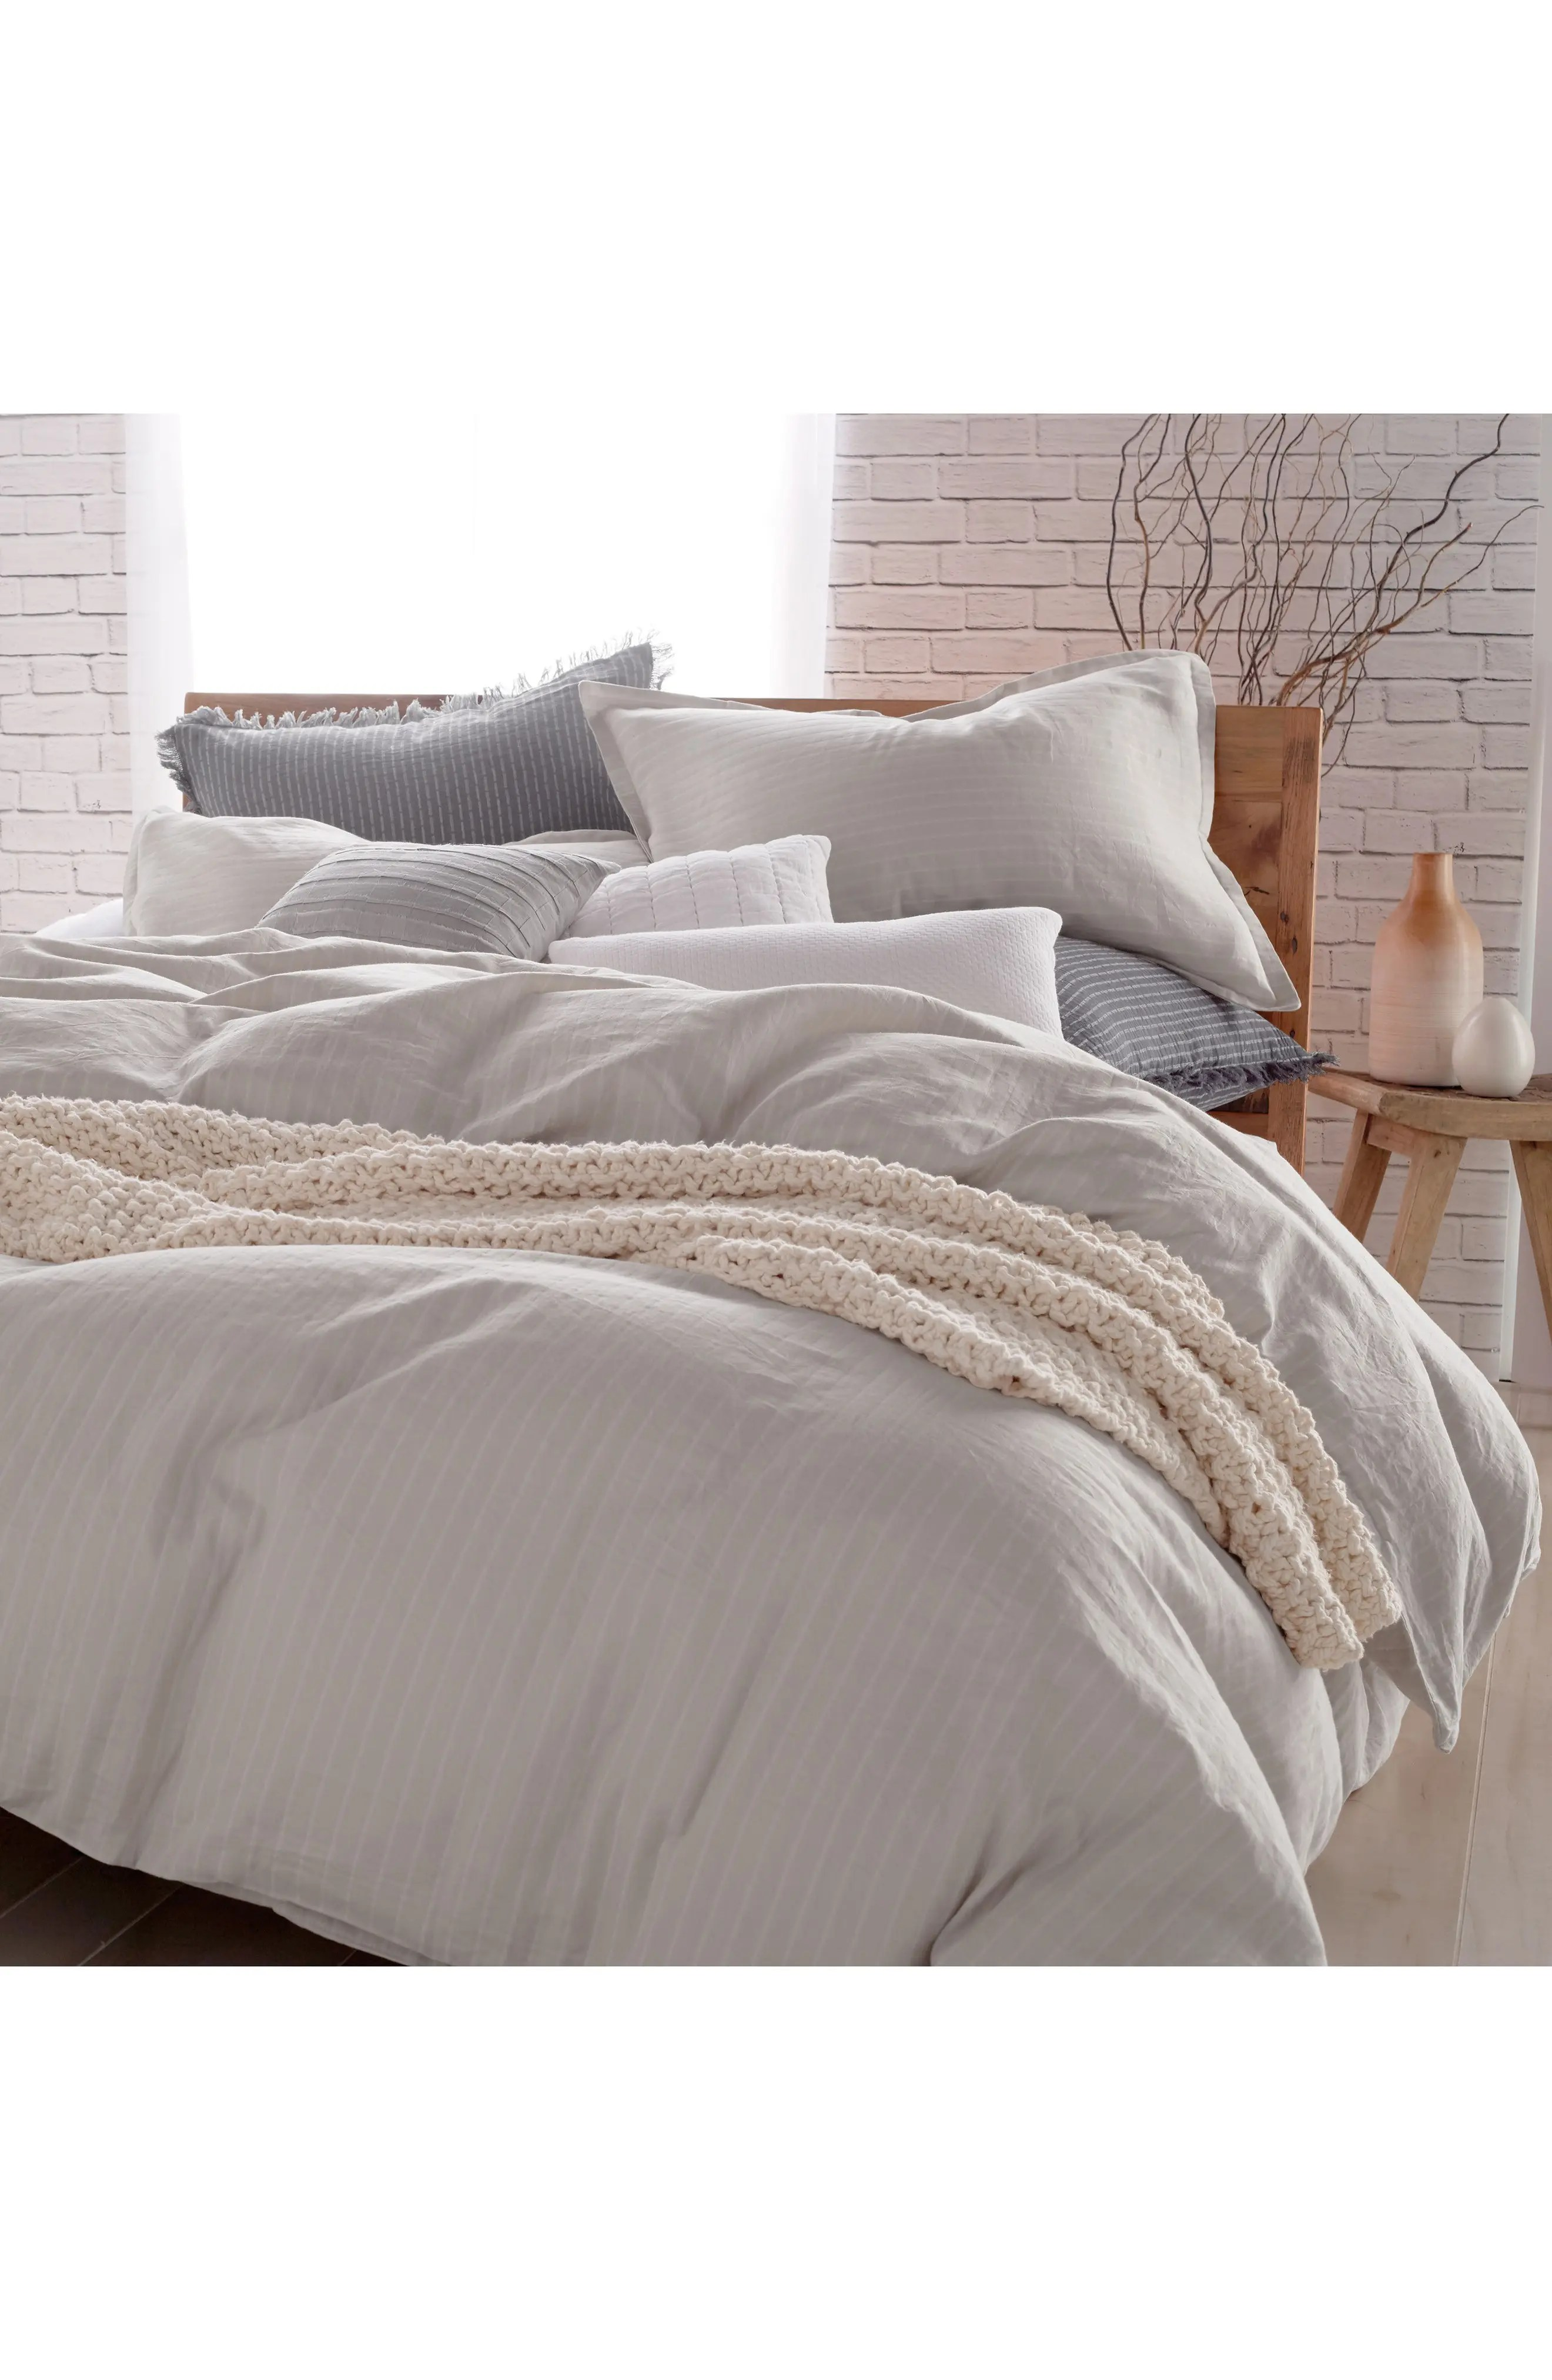 Cotton Quilt Covers King Size Duvet Covers Bedding Sheet Sets Nordstrom